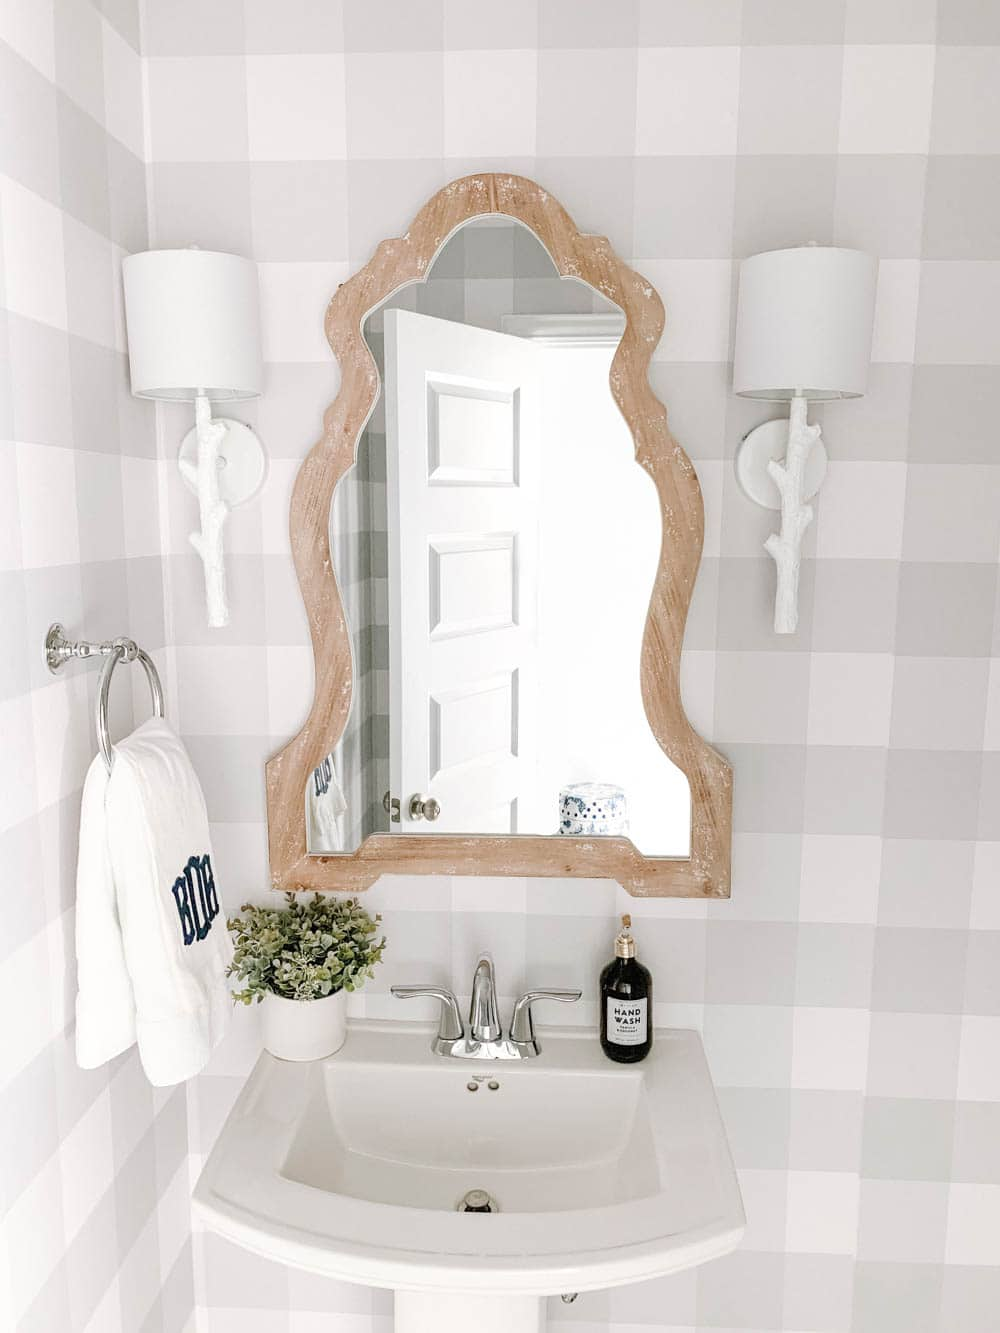 Wood mirror, white faux bois sconces and grey and white buffalo check wallpaper in this coastal bathroom design. #ABlissfulNets #bathroom #farmhouse #bathroomdesign